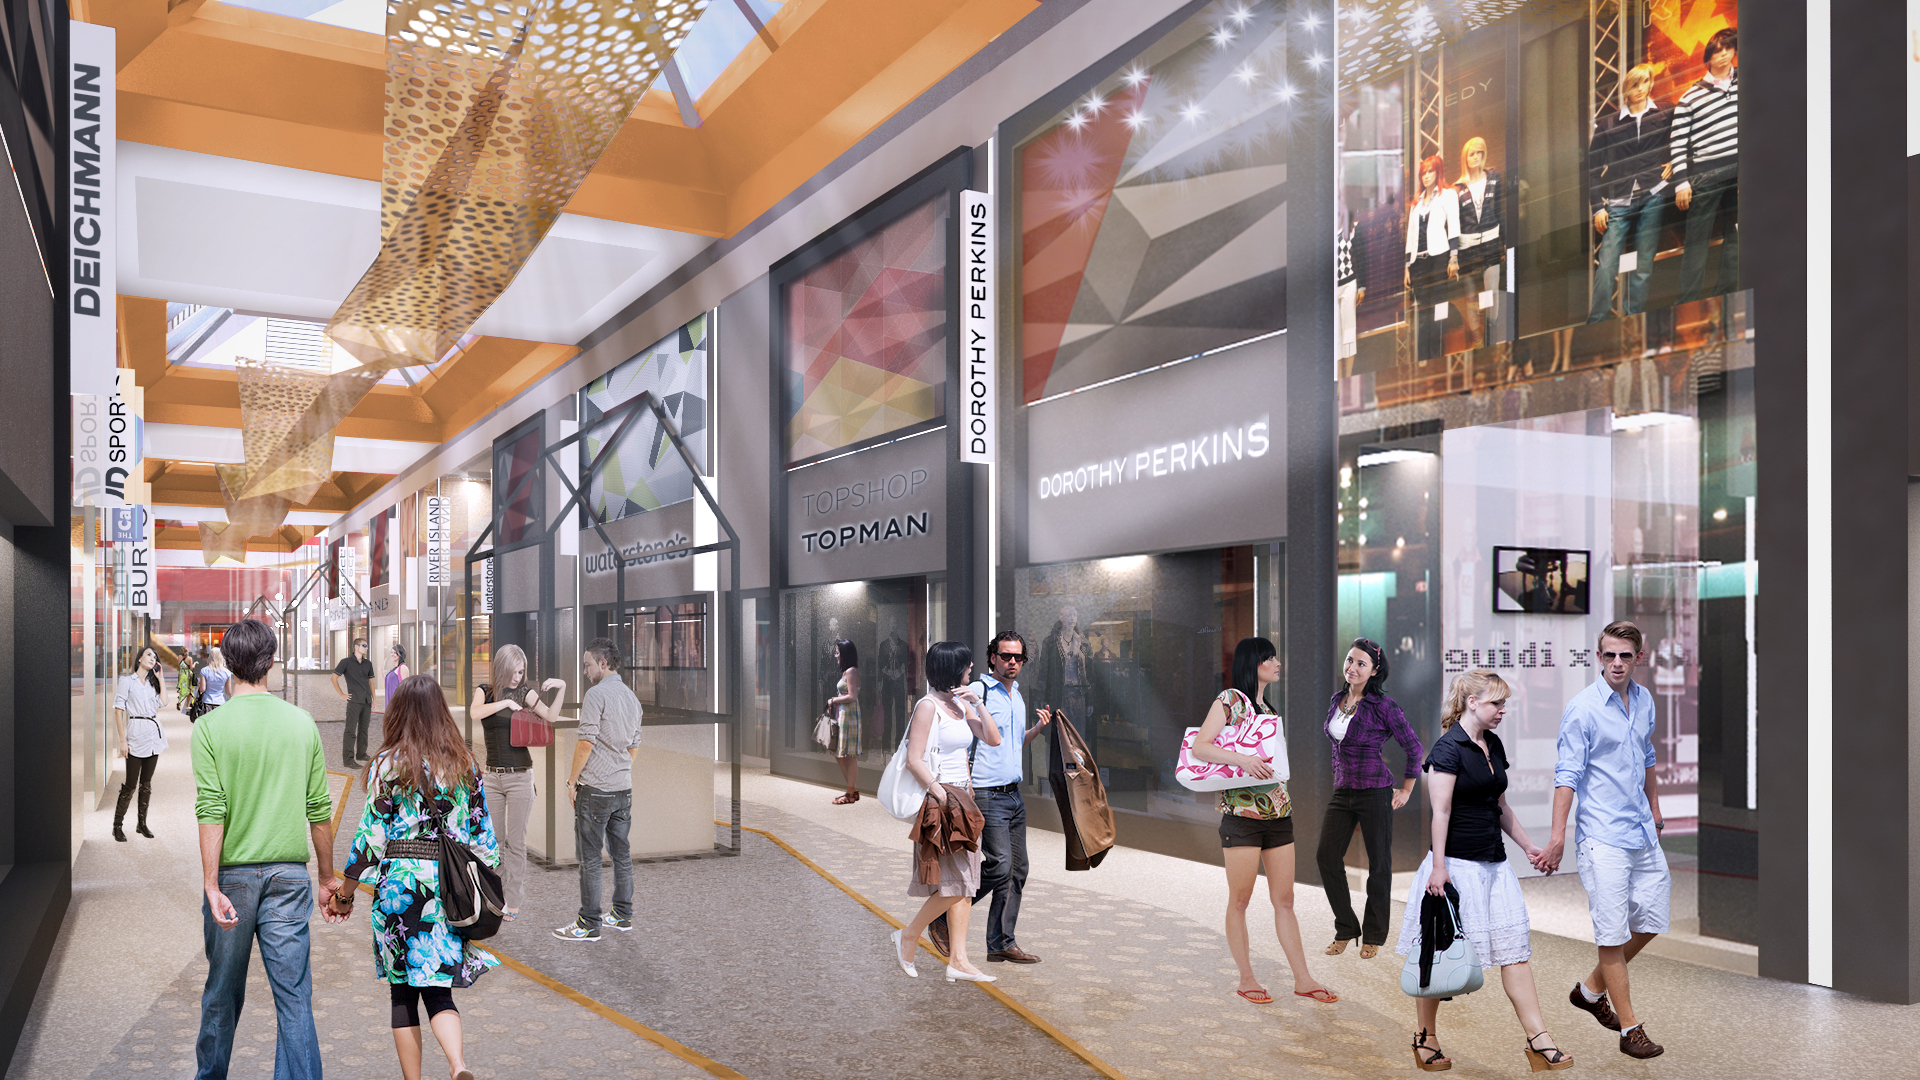 An artist's impression of the new interior of The Mall.